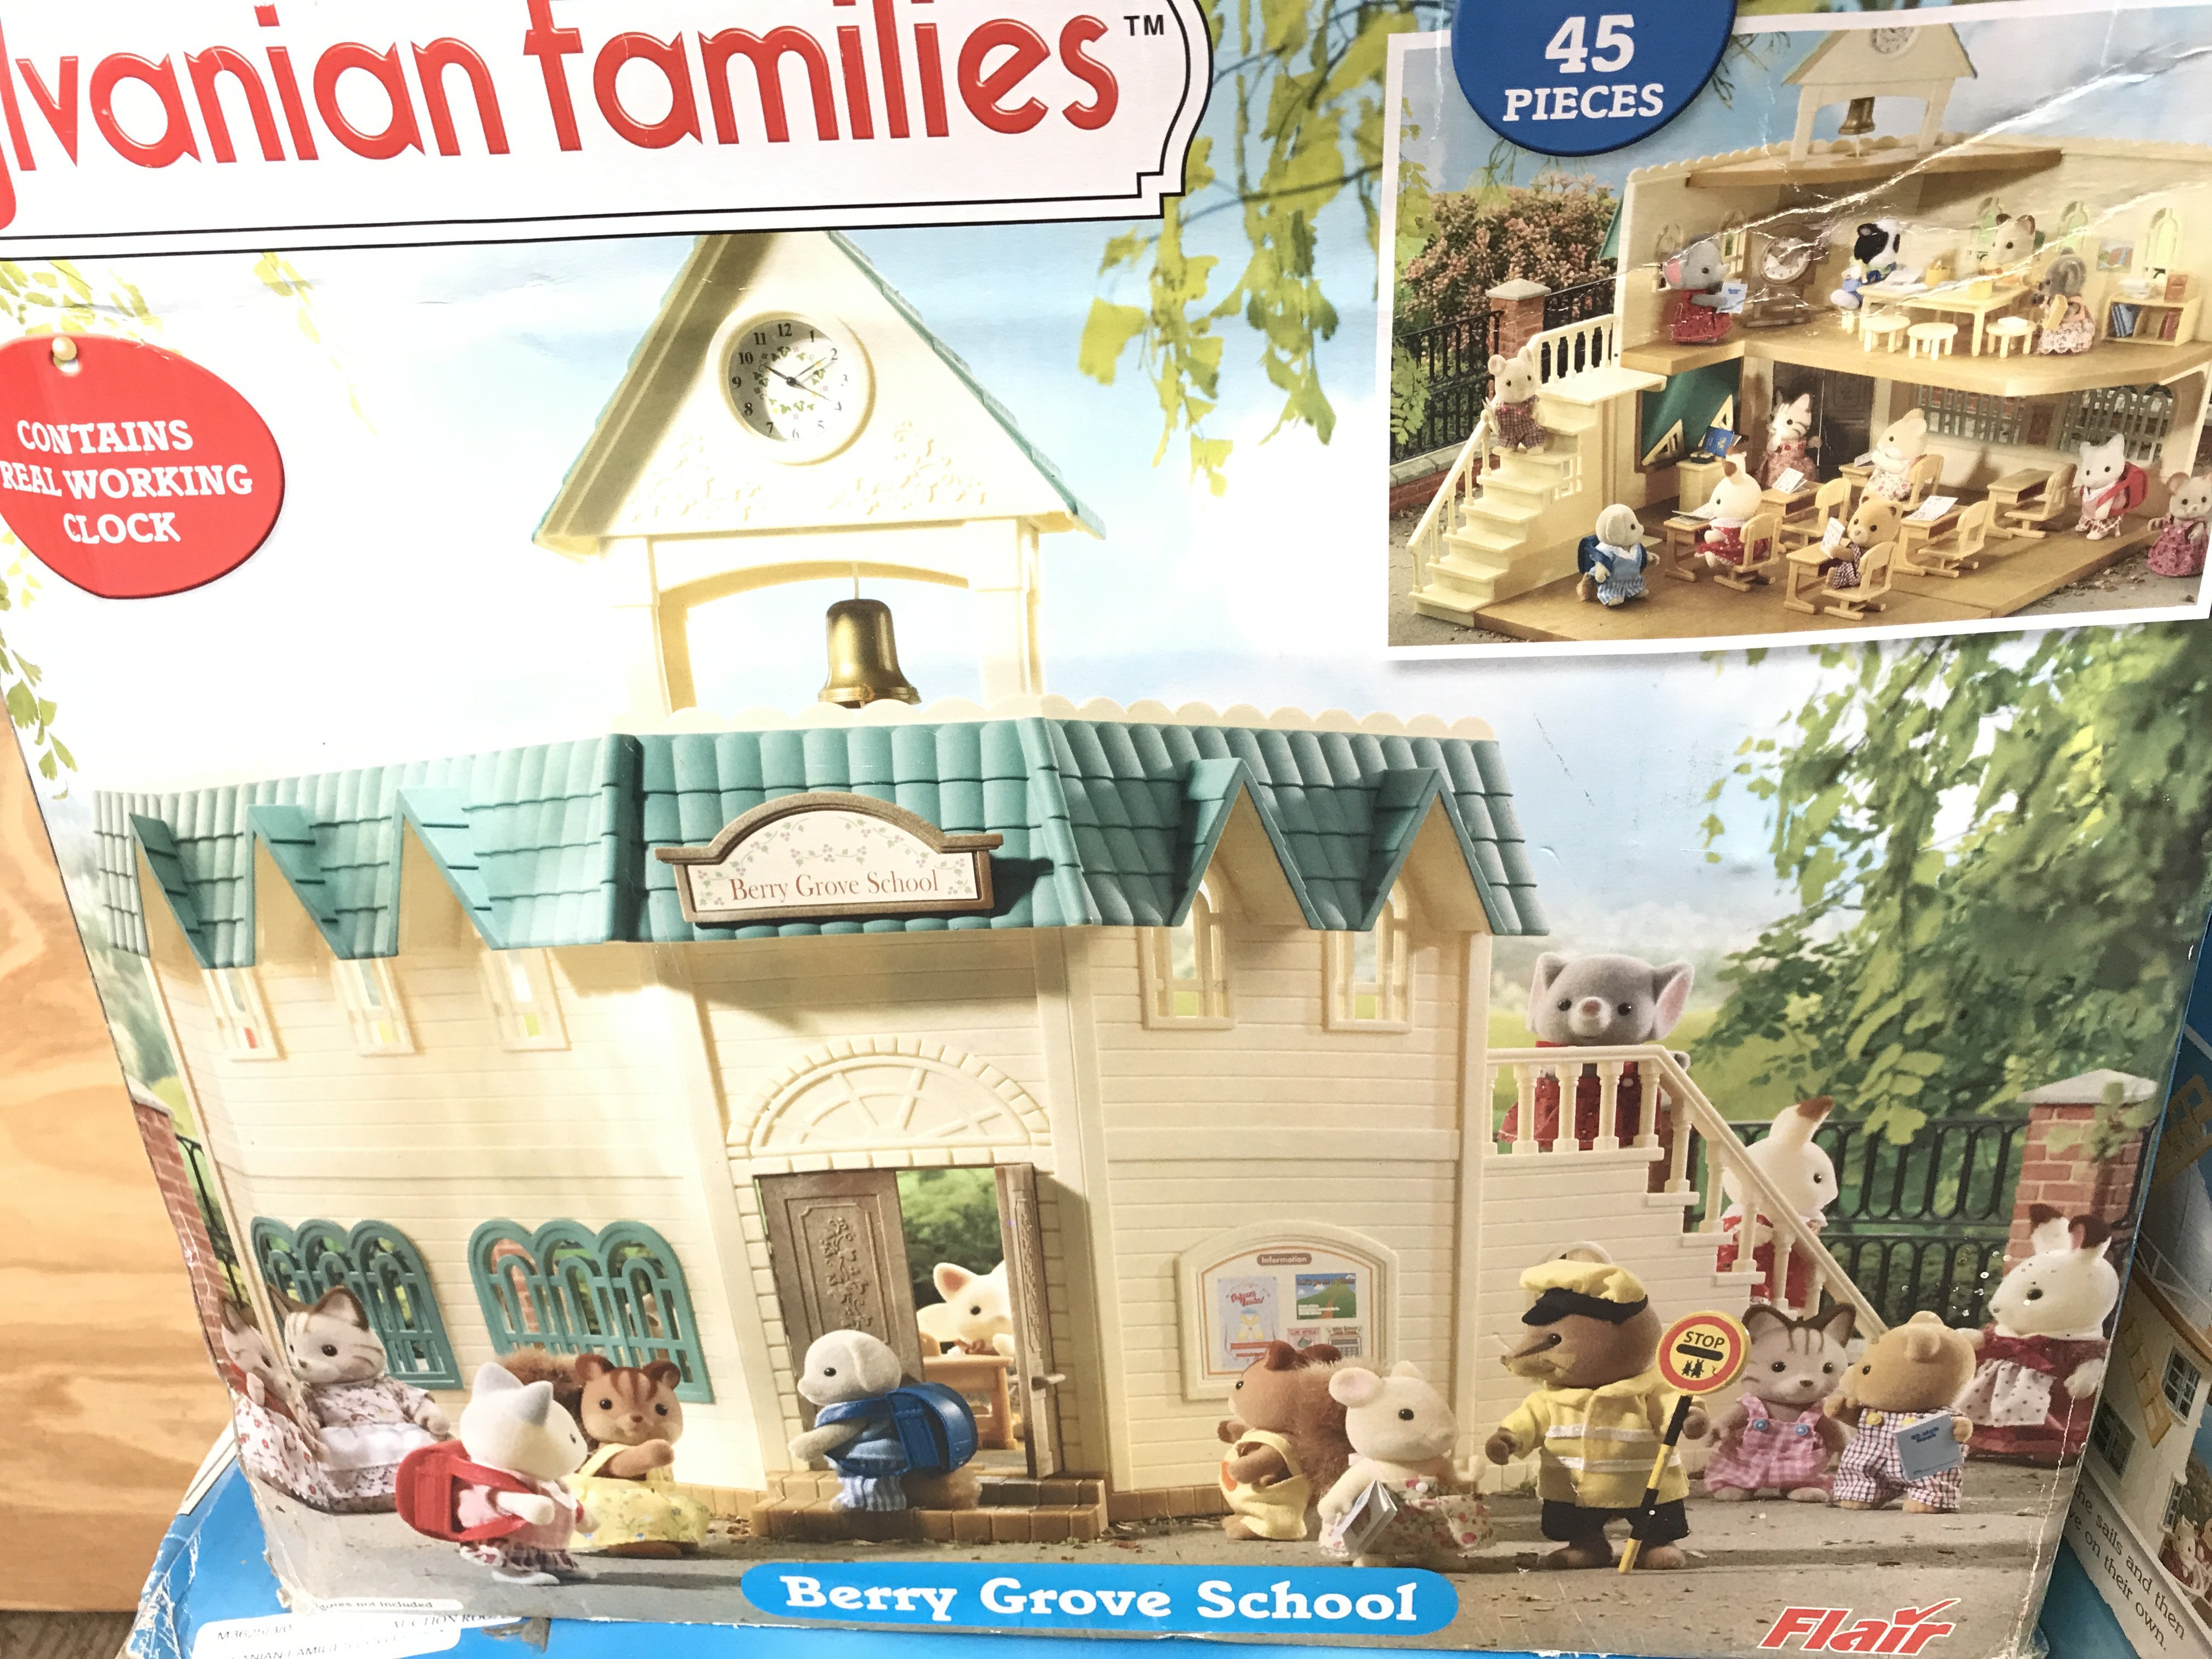 3 X Boxed Sylvanian Families Boxed PlaySets, inclu - Image 4 of 4